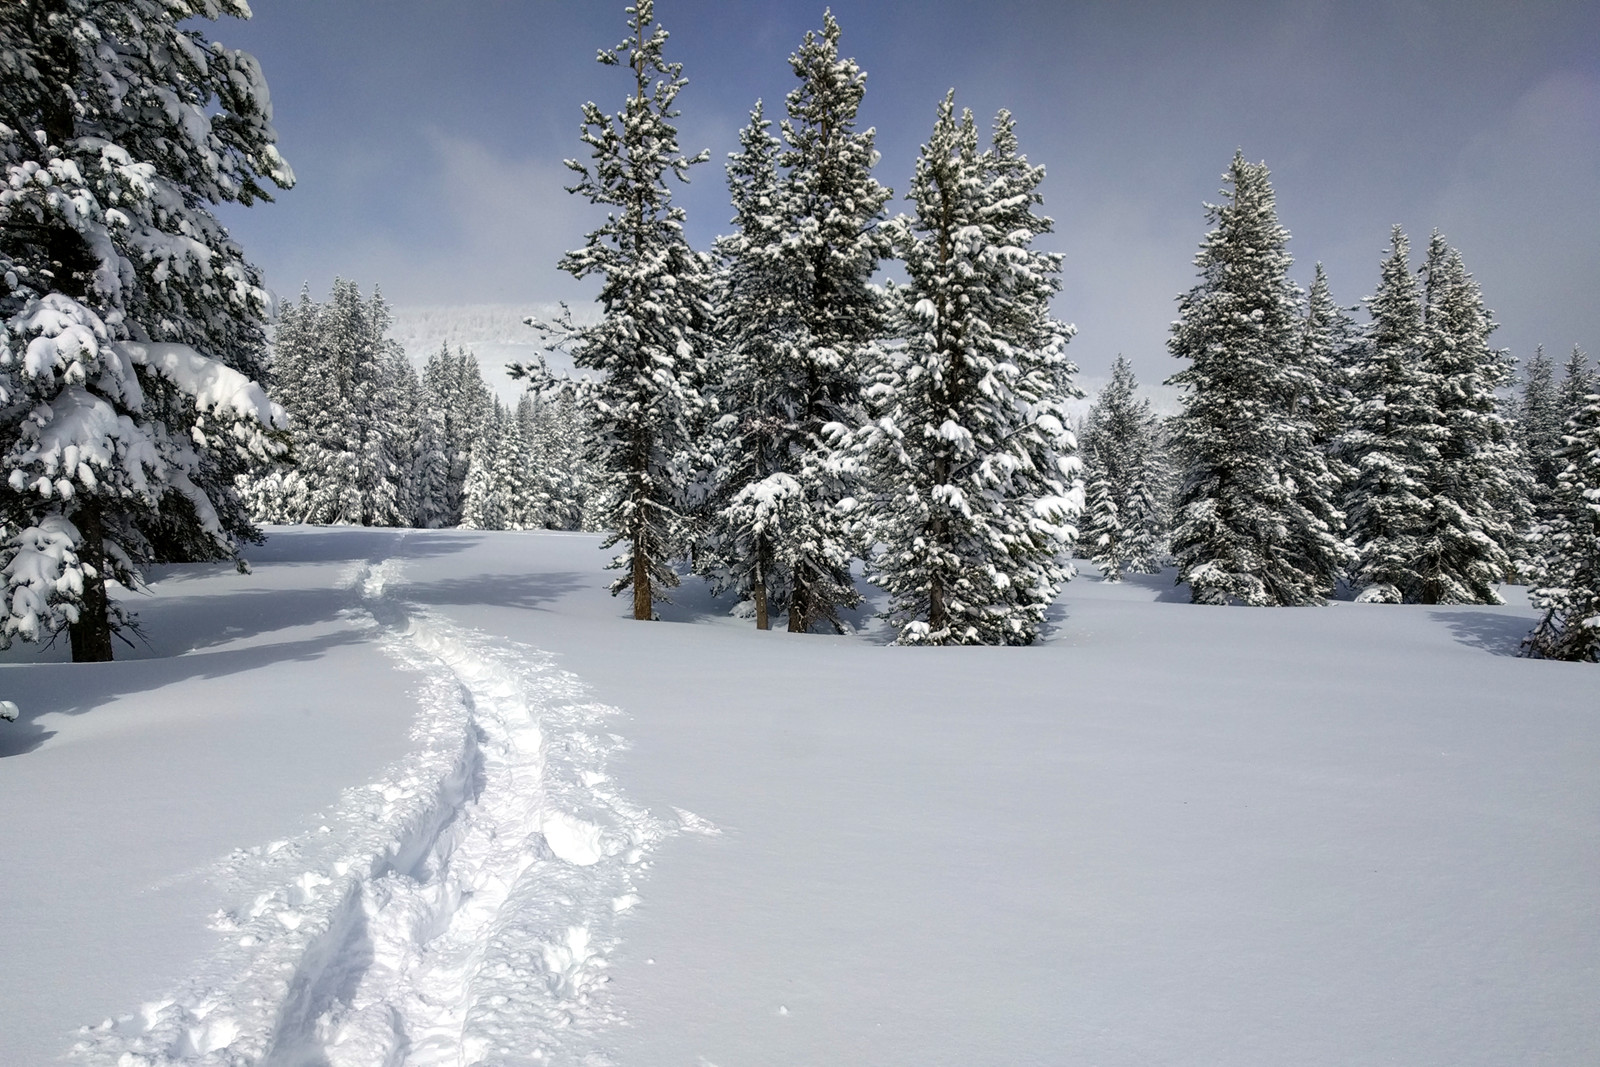 Snowshoe tracks through the trees around Lake Tahoe, California